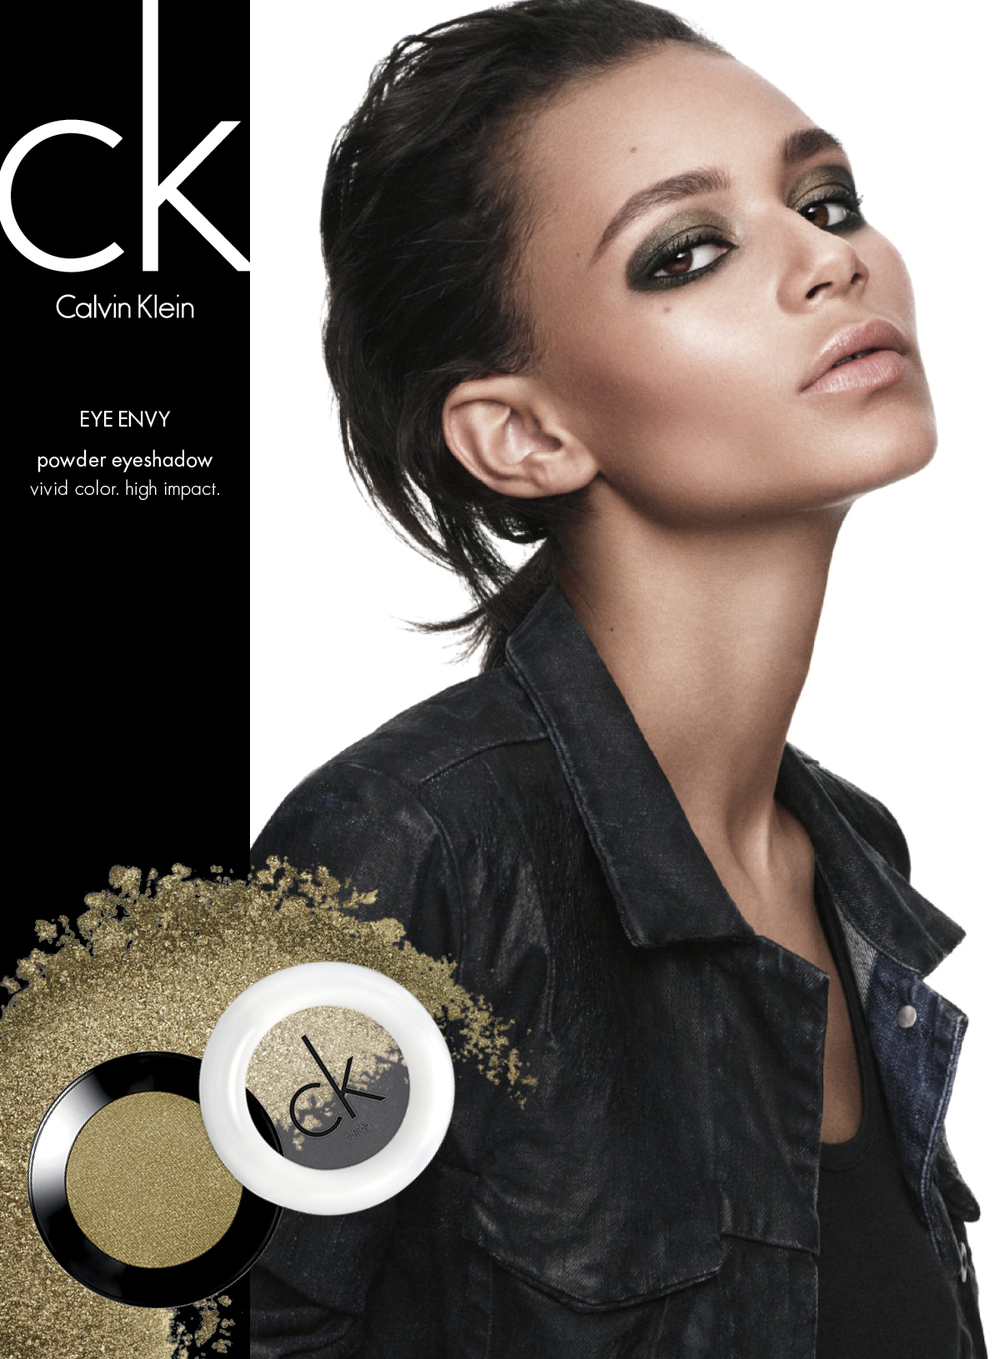 CK COLOR SINGLE PAGE 8%22X10.875%22_POWDER EYESHADOW (MONO).jpg